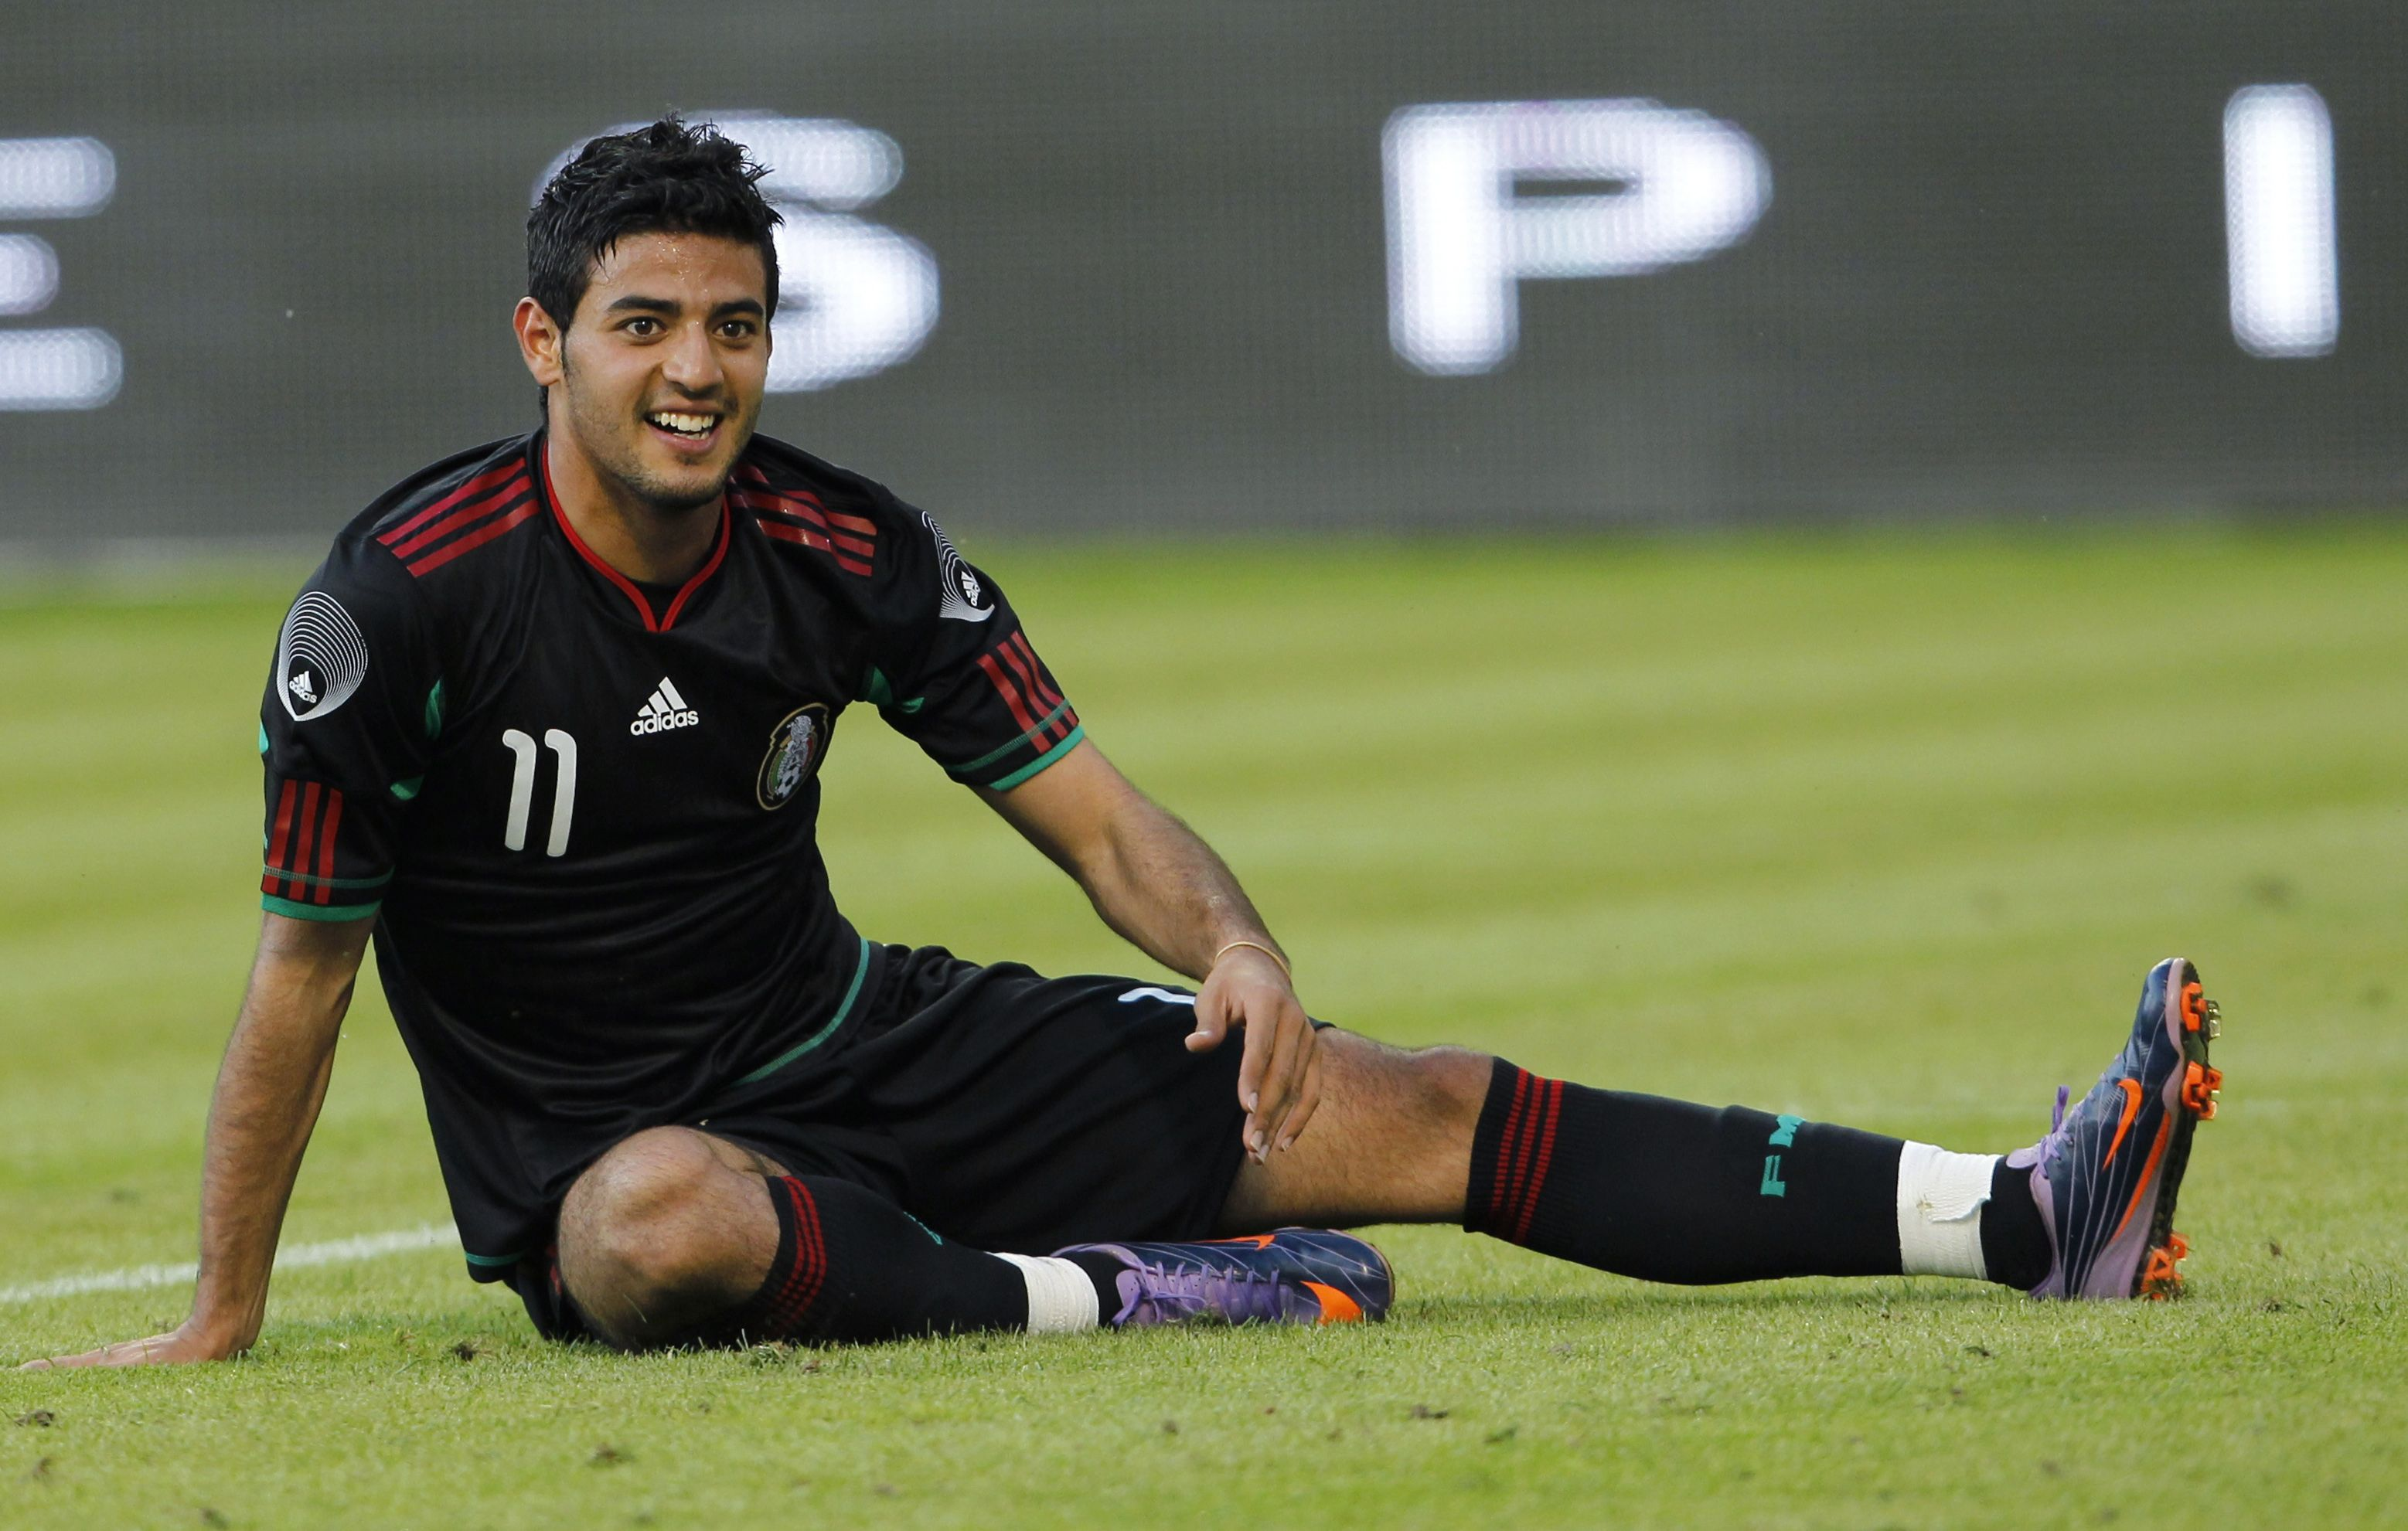 Mls Sources Confirm Lafc Has Deal W Mexican National Team Star Carlos Vela To Be Team S First Ever Dp Signing Could Happen La Carlos Vela Futbol Los Angeles